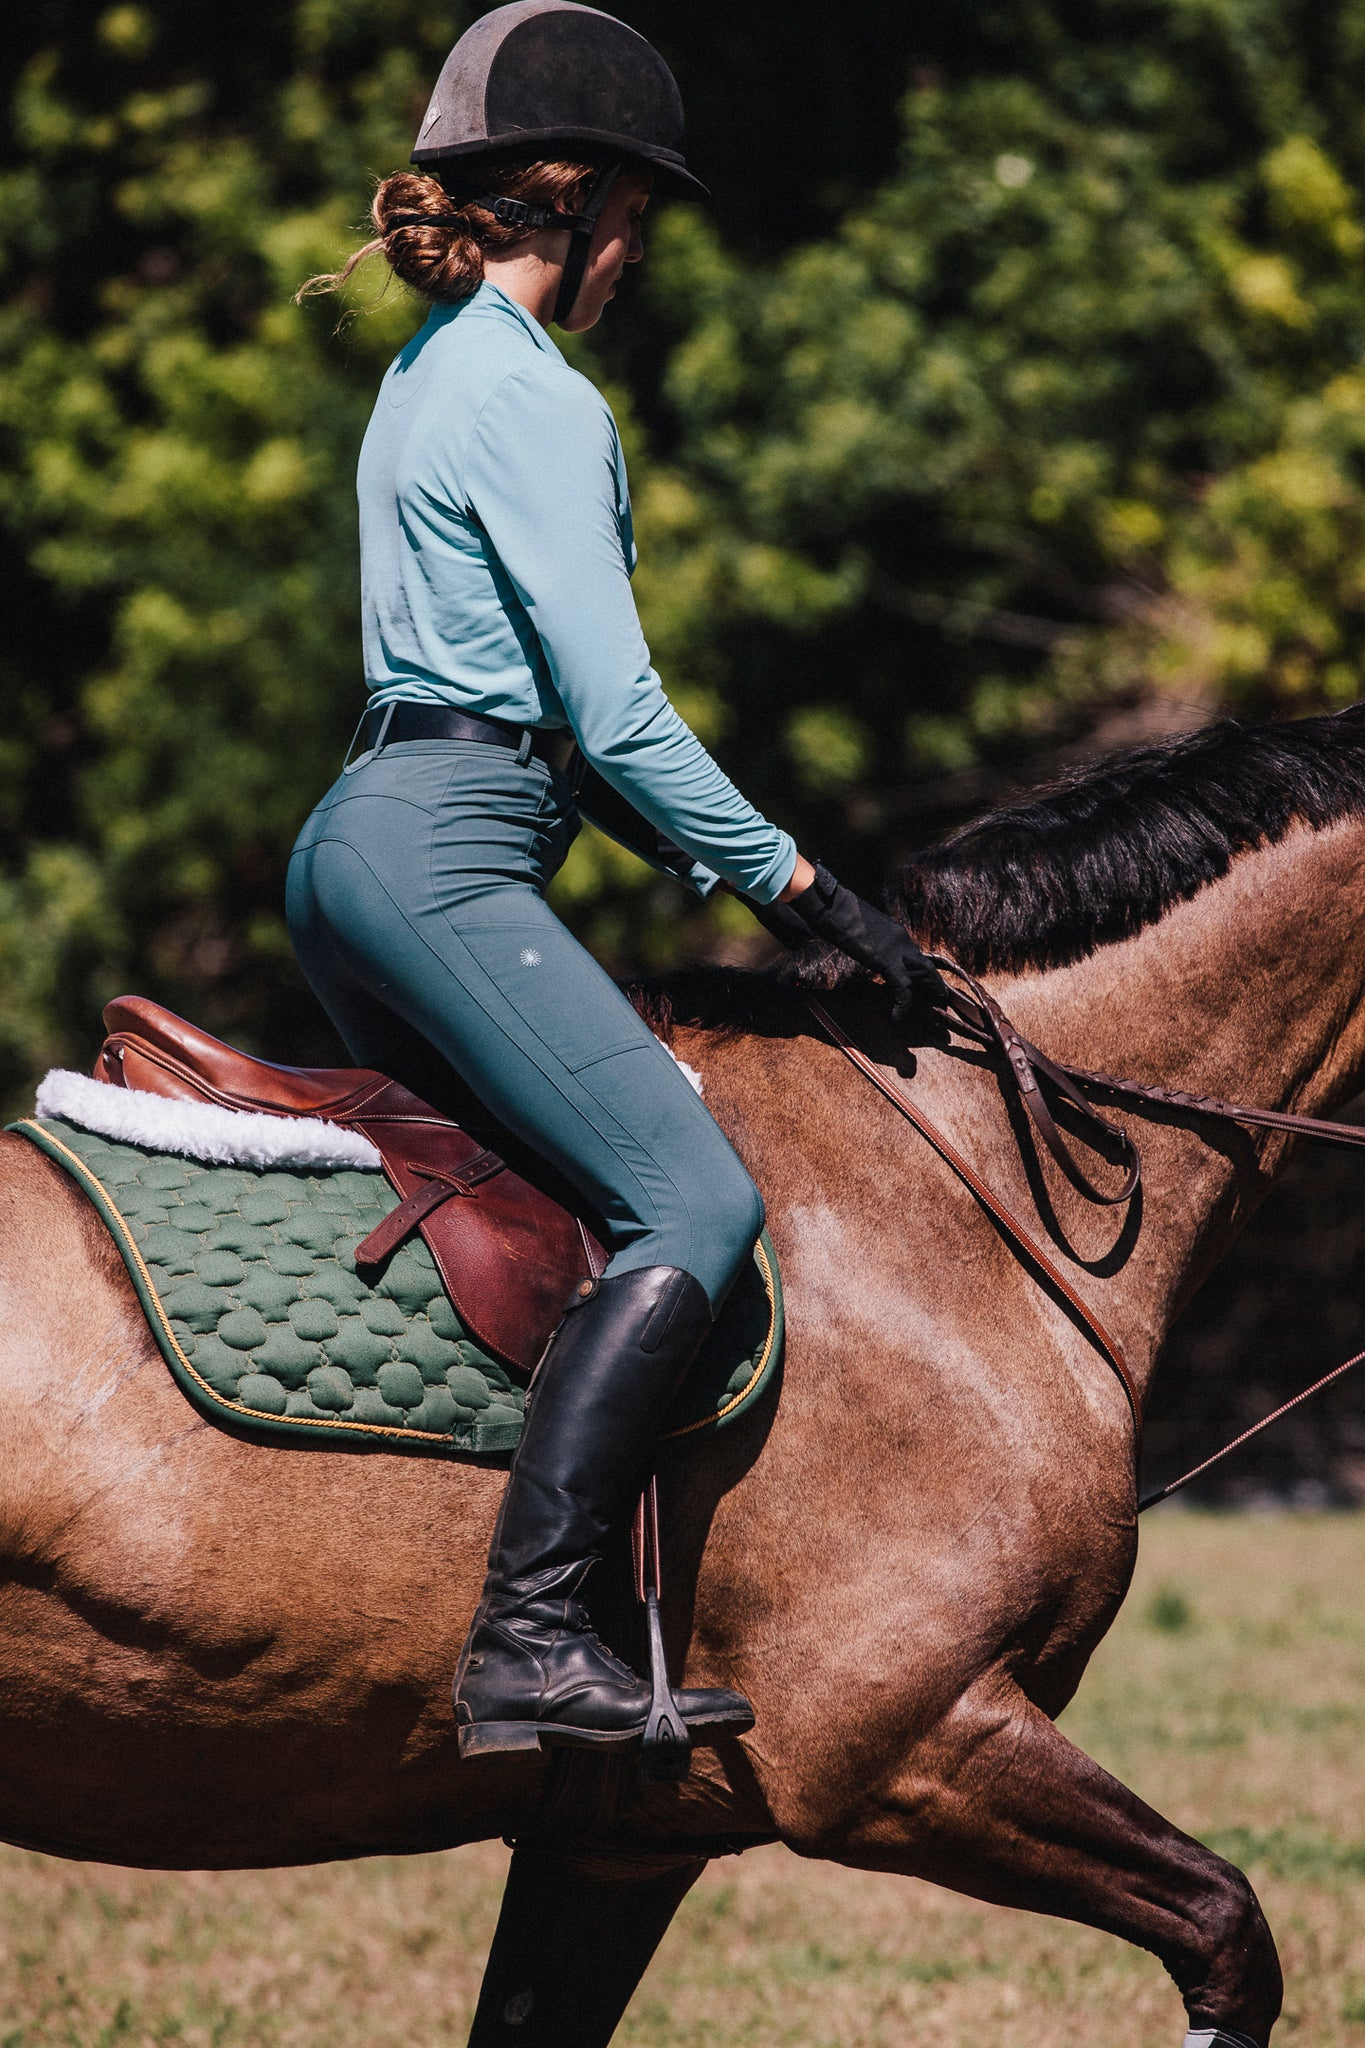 High waisted ladies breeches for comfort and style